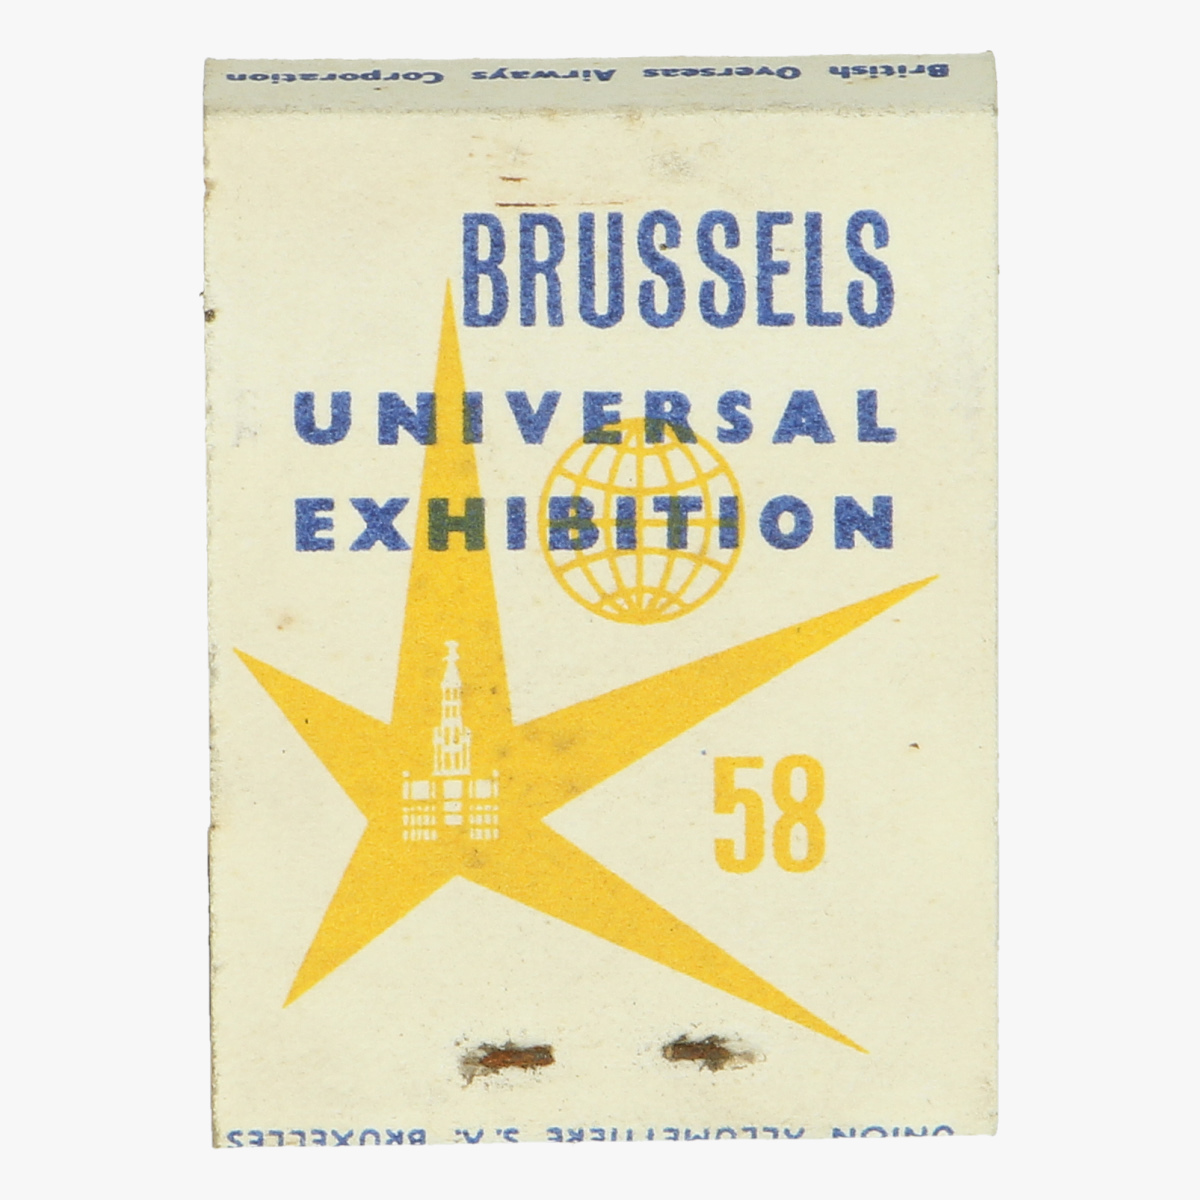 Afbeeldingen van expo 58 lucifers b.o.a.c the world wide airline